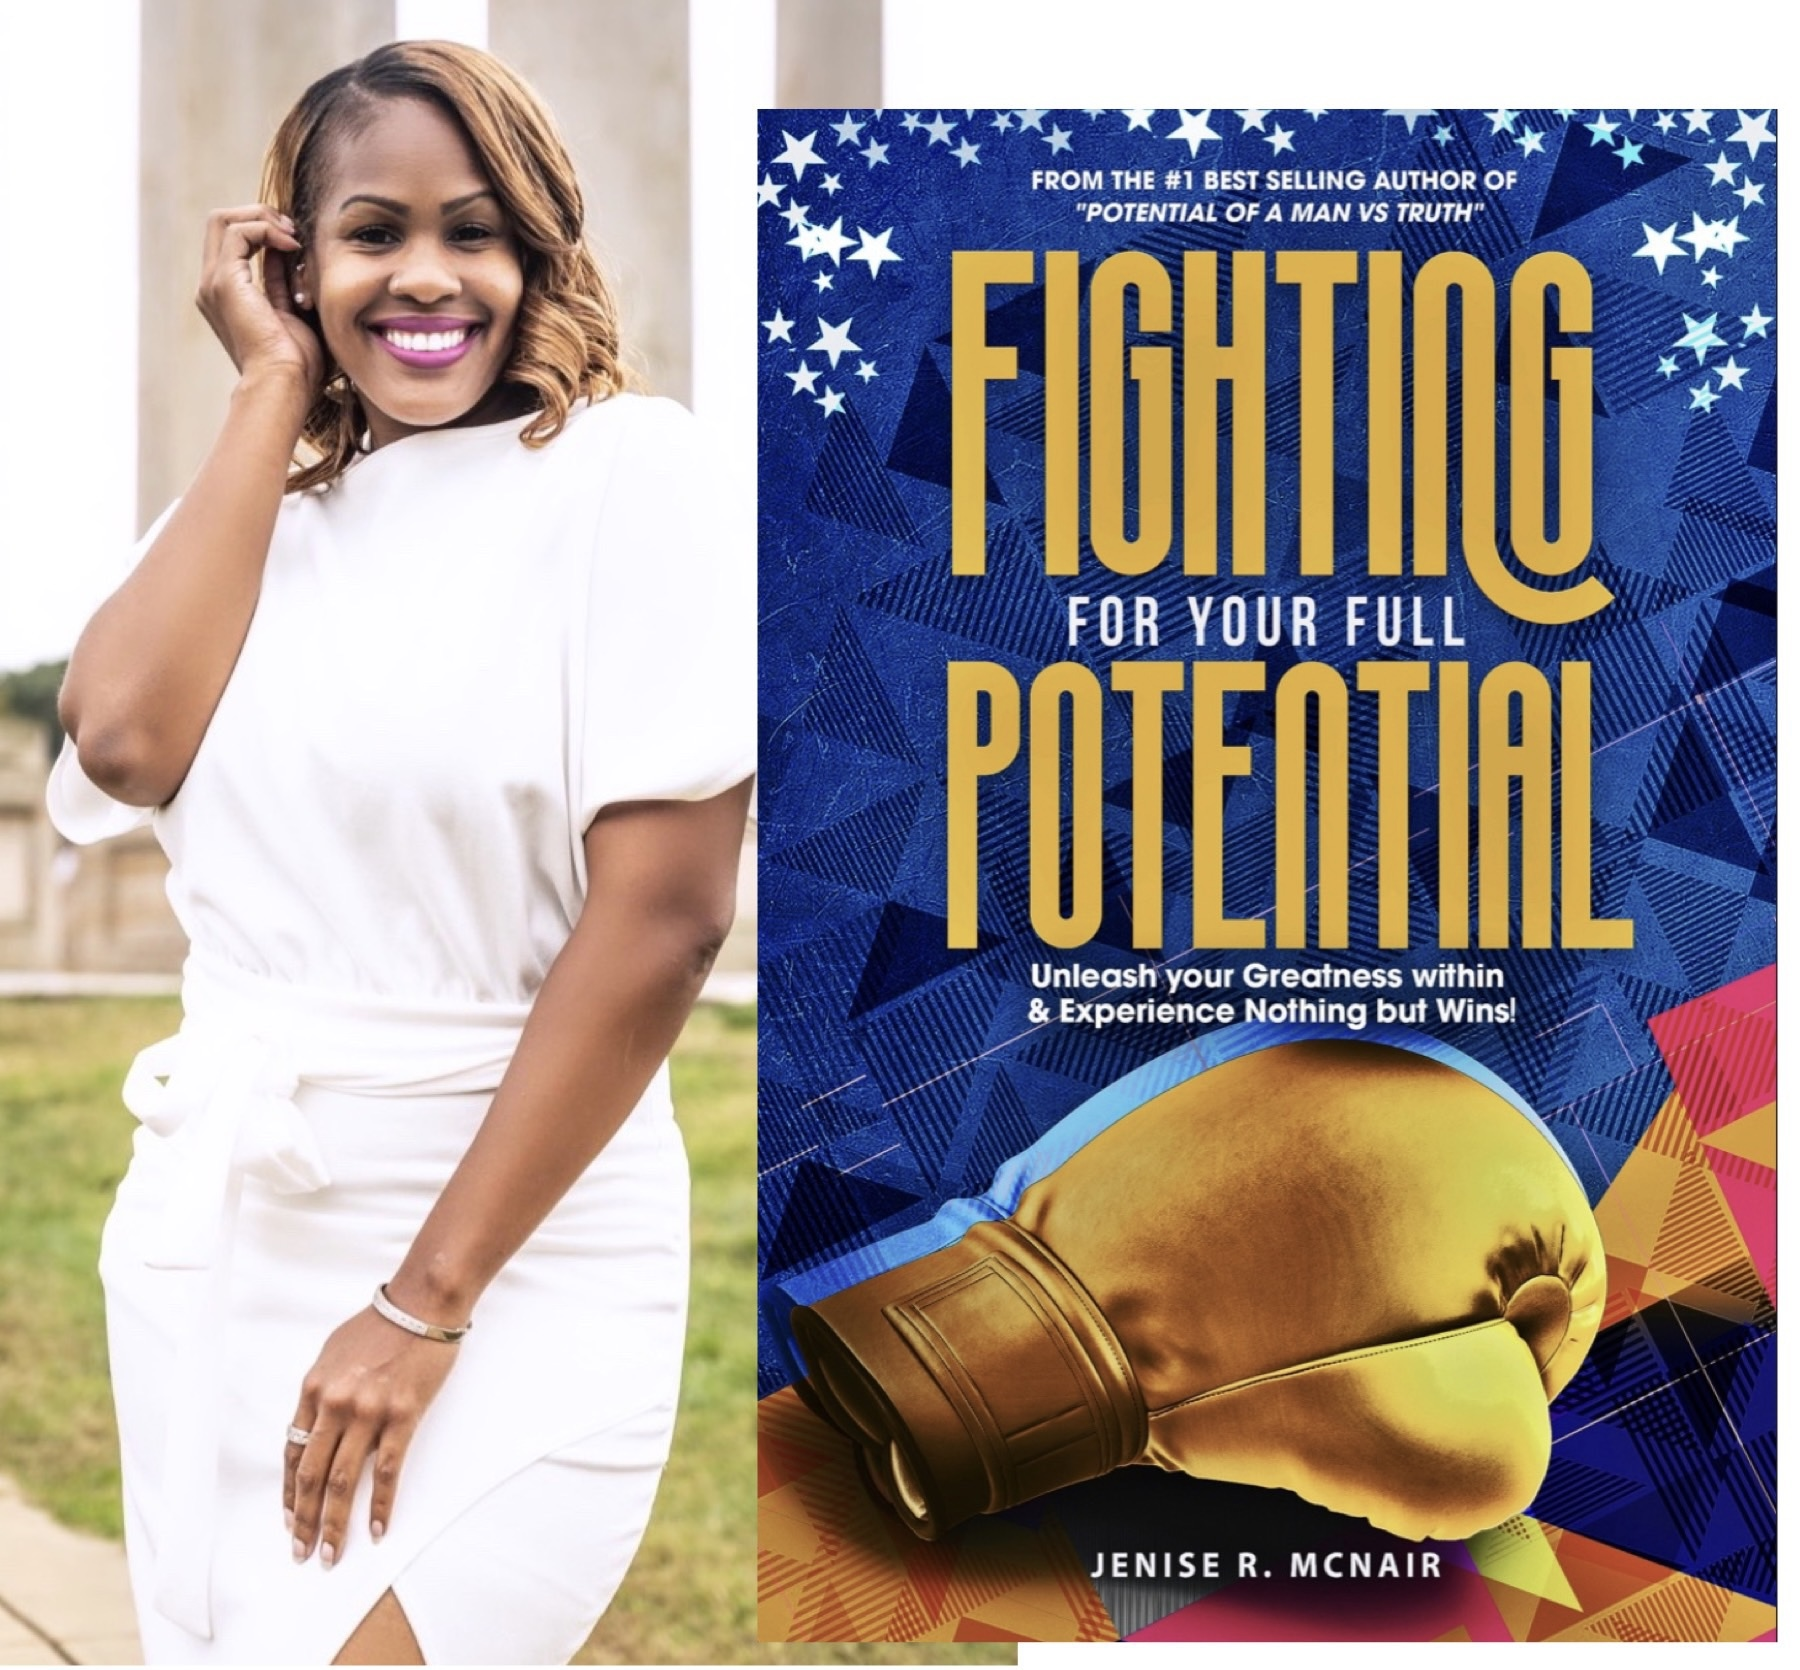 "Jenise McNair becomes a #1 International Bestselling Author, from her 2nd book released for the year titled: ""Fighting For Your Full Potential""."